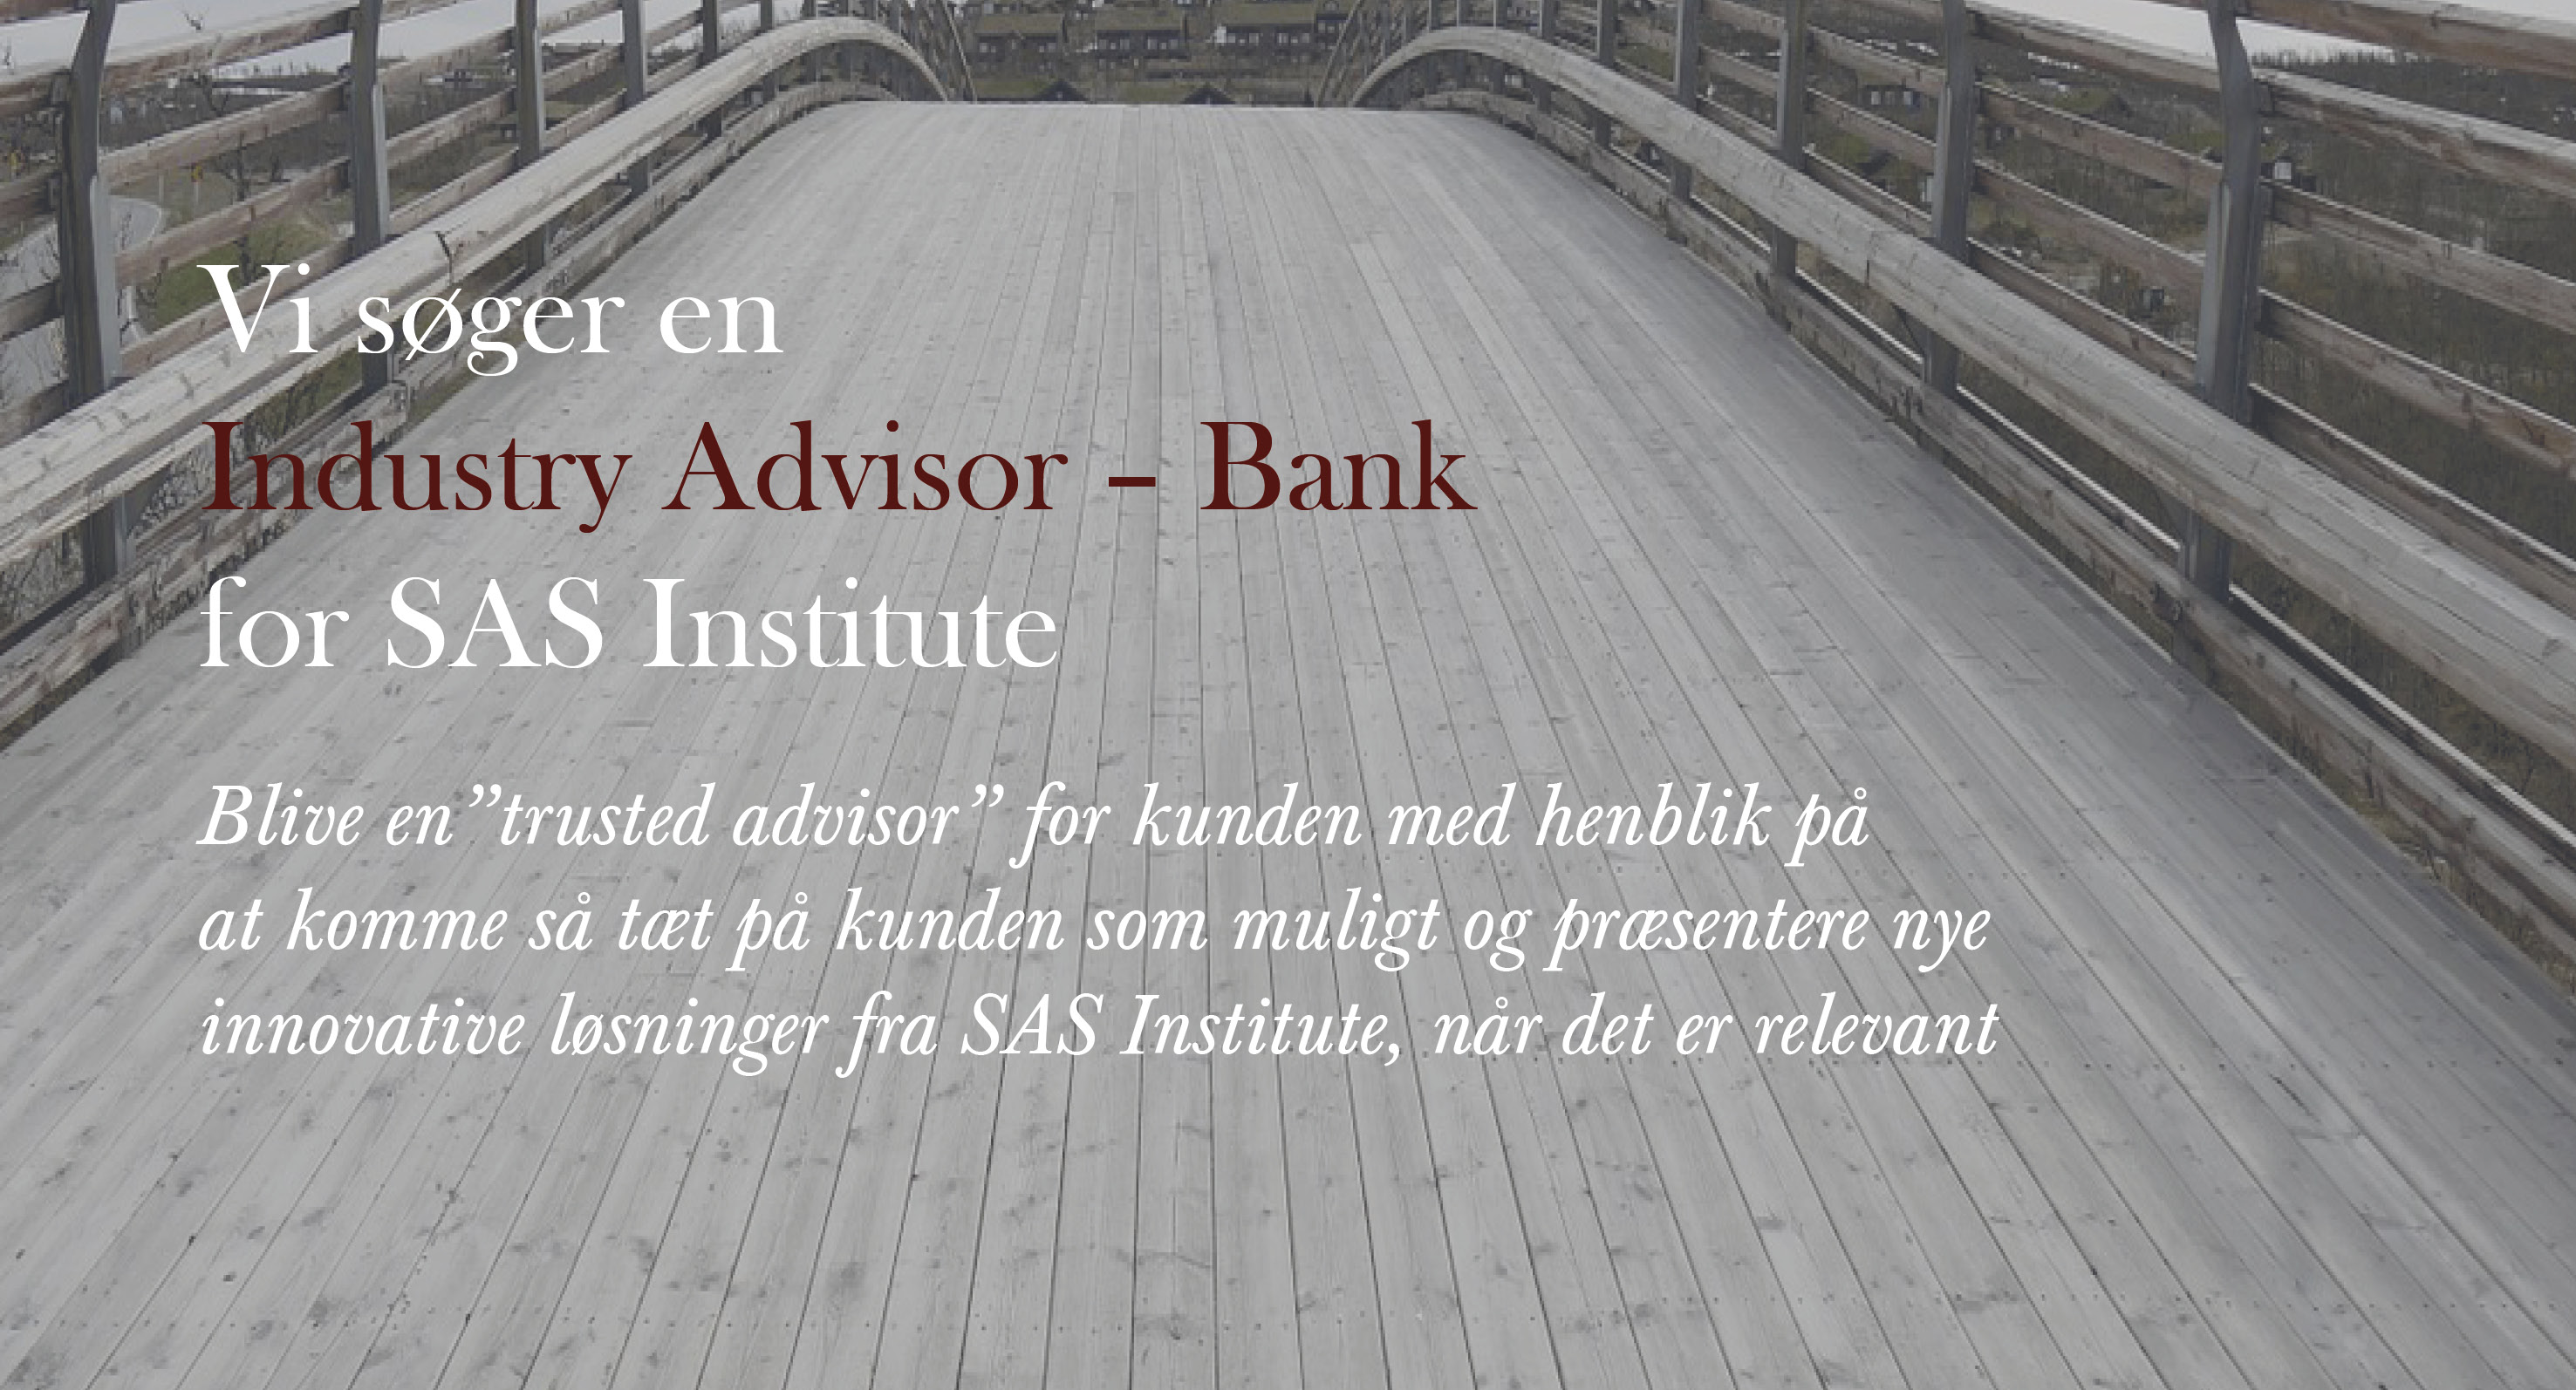 Industry Advisor - Bank